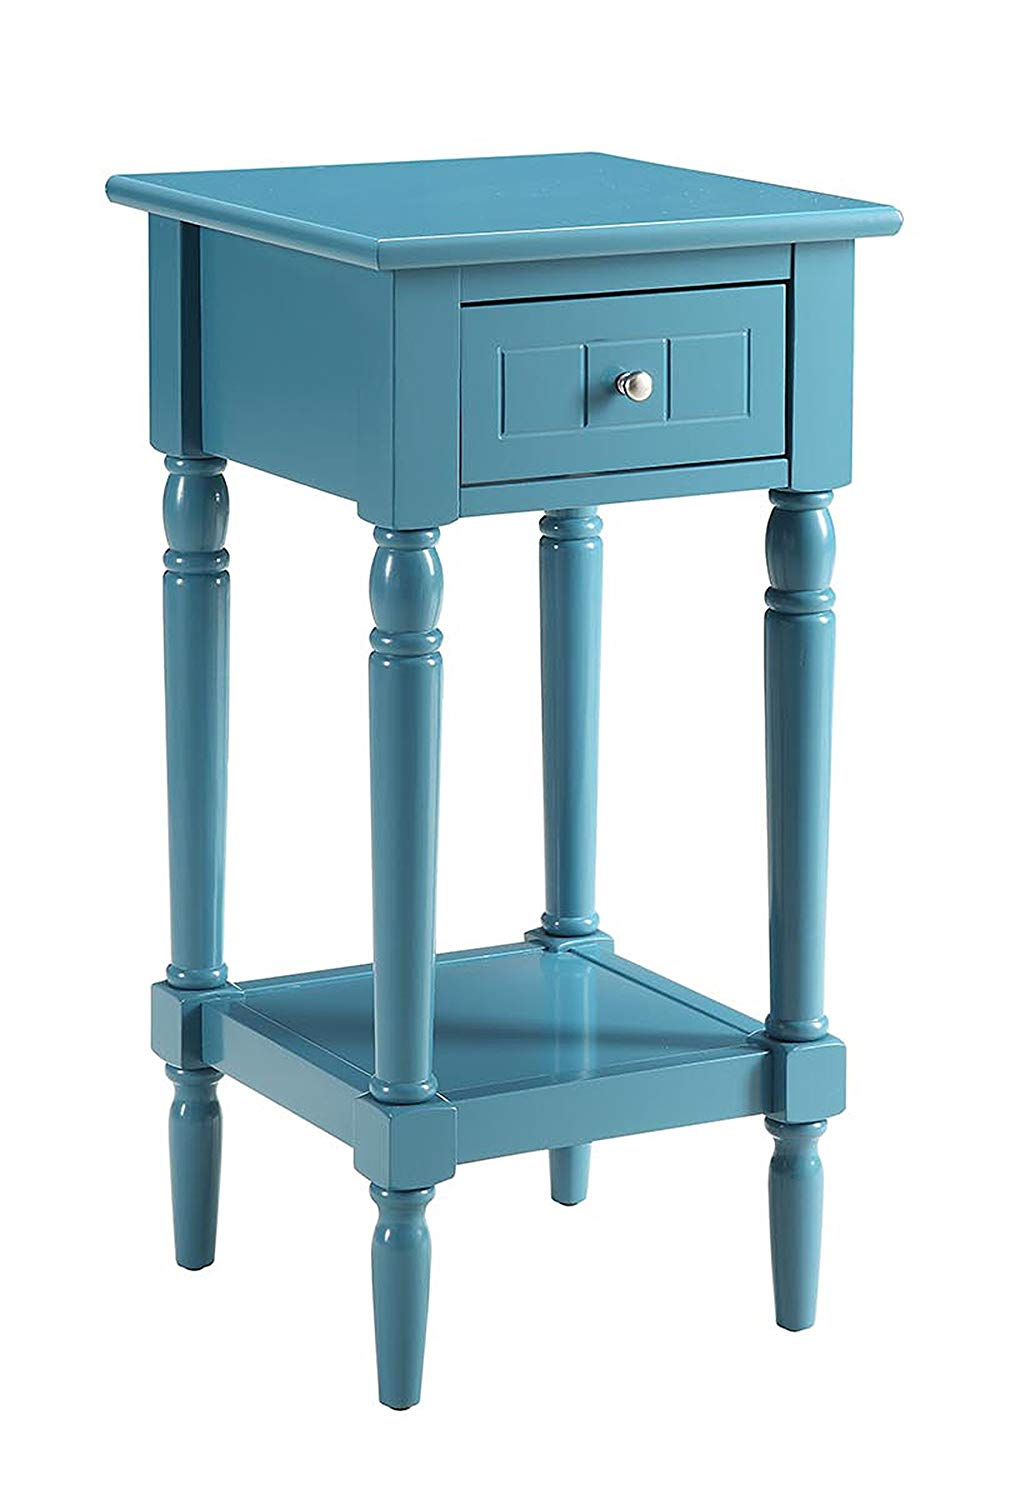 convenience concepts french country khloe accent table small cherry blue kitchen dining room with bench ellipsis slim bath and beyond wall clocks decorative furniture legs tall